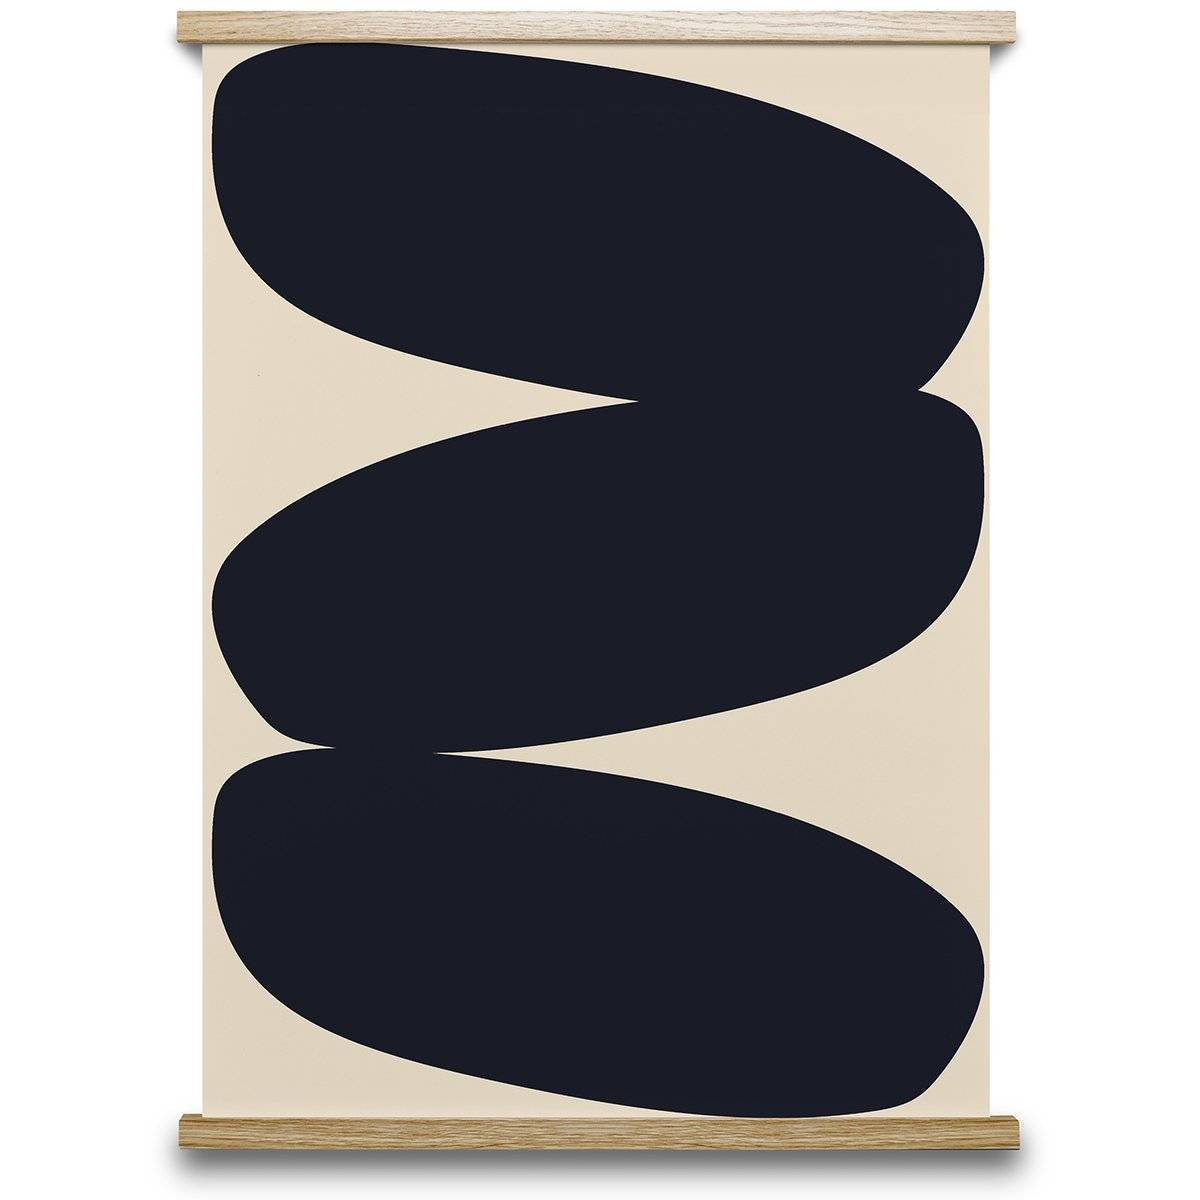 Paper Collective Solid Shapes 01 poster 70x100 cm